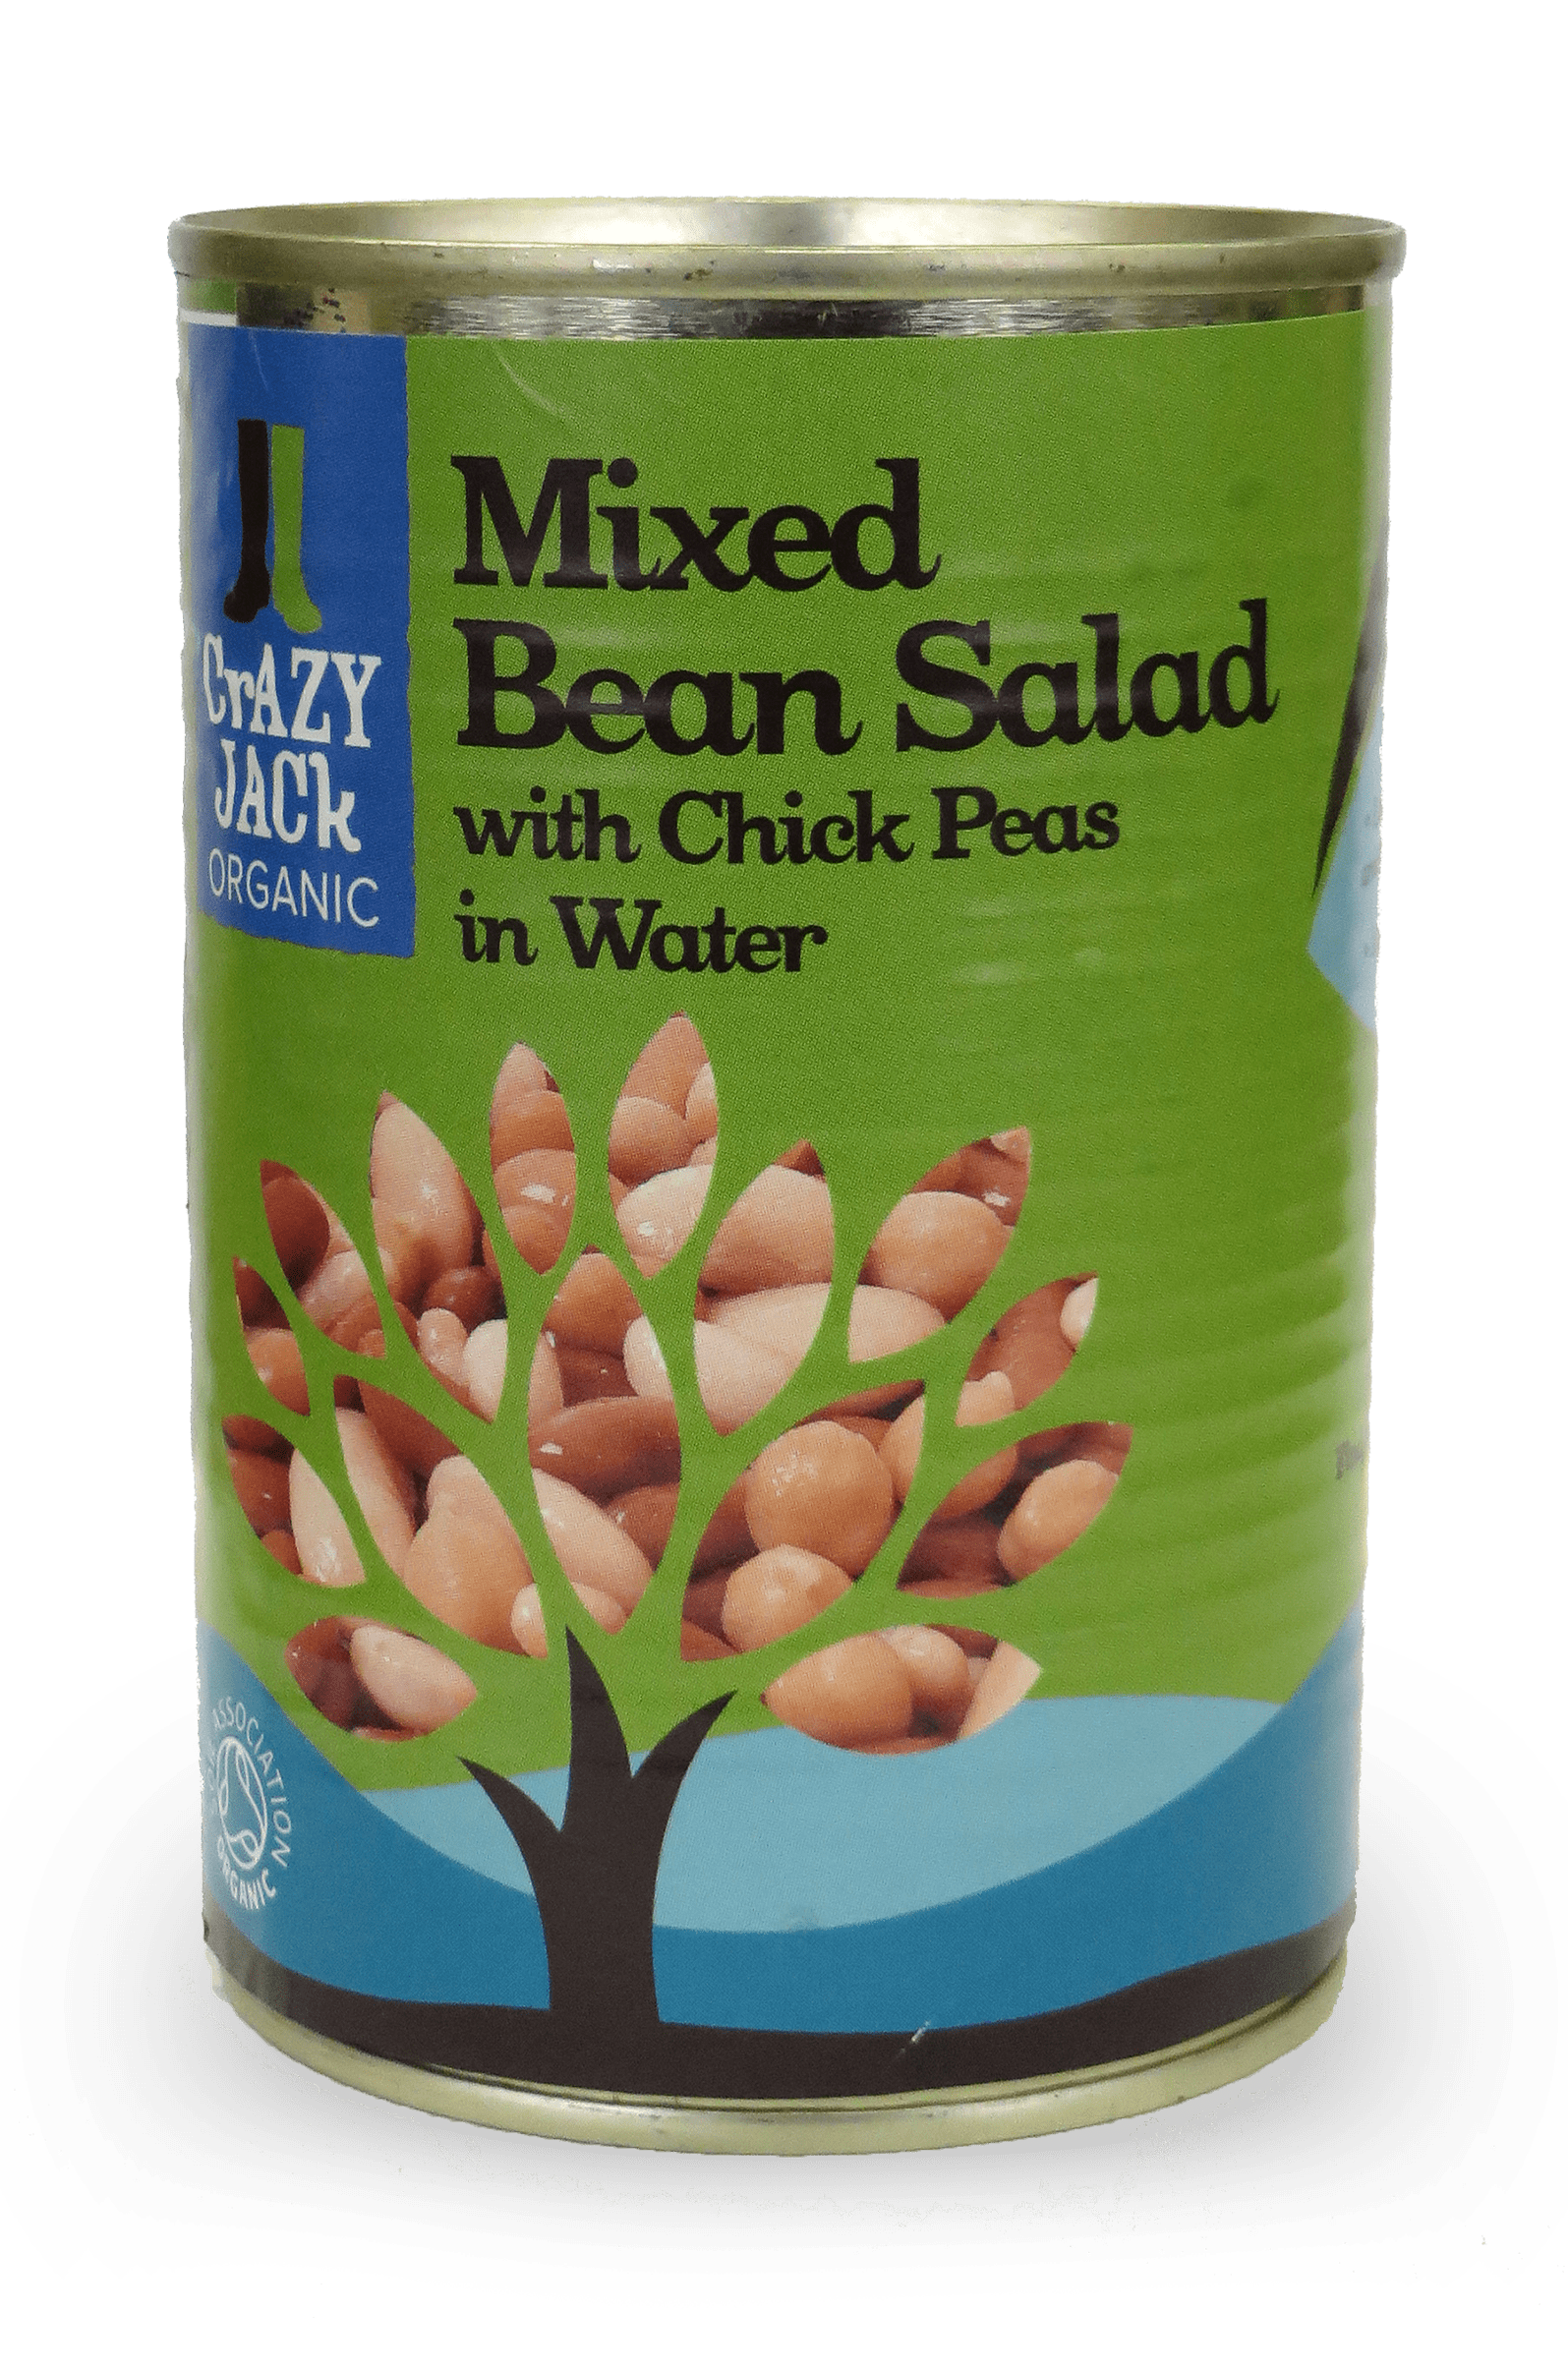 A tin of organic mixed bean salad with chick peas in water